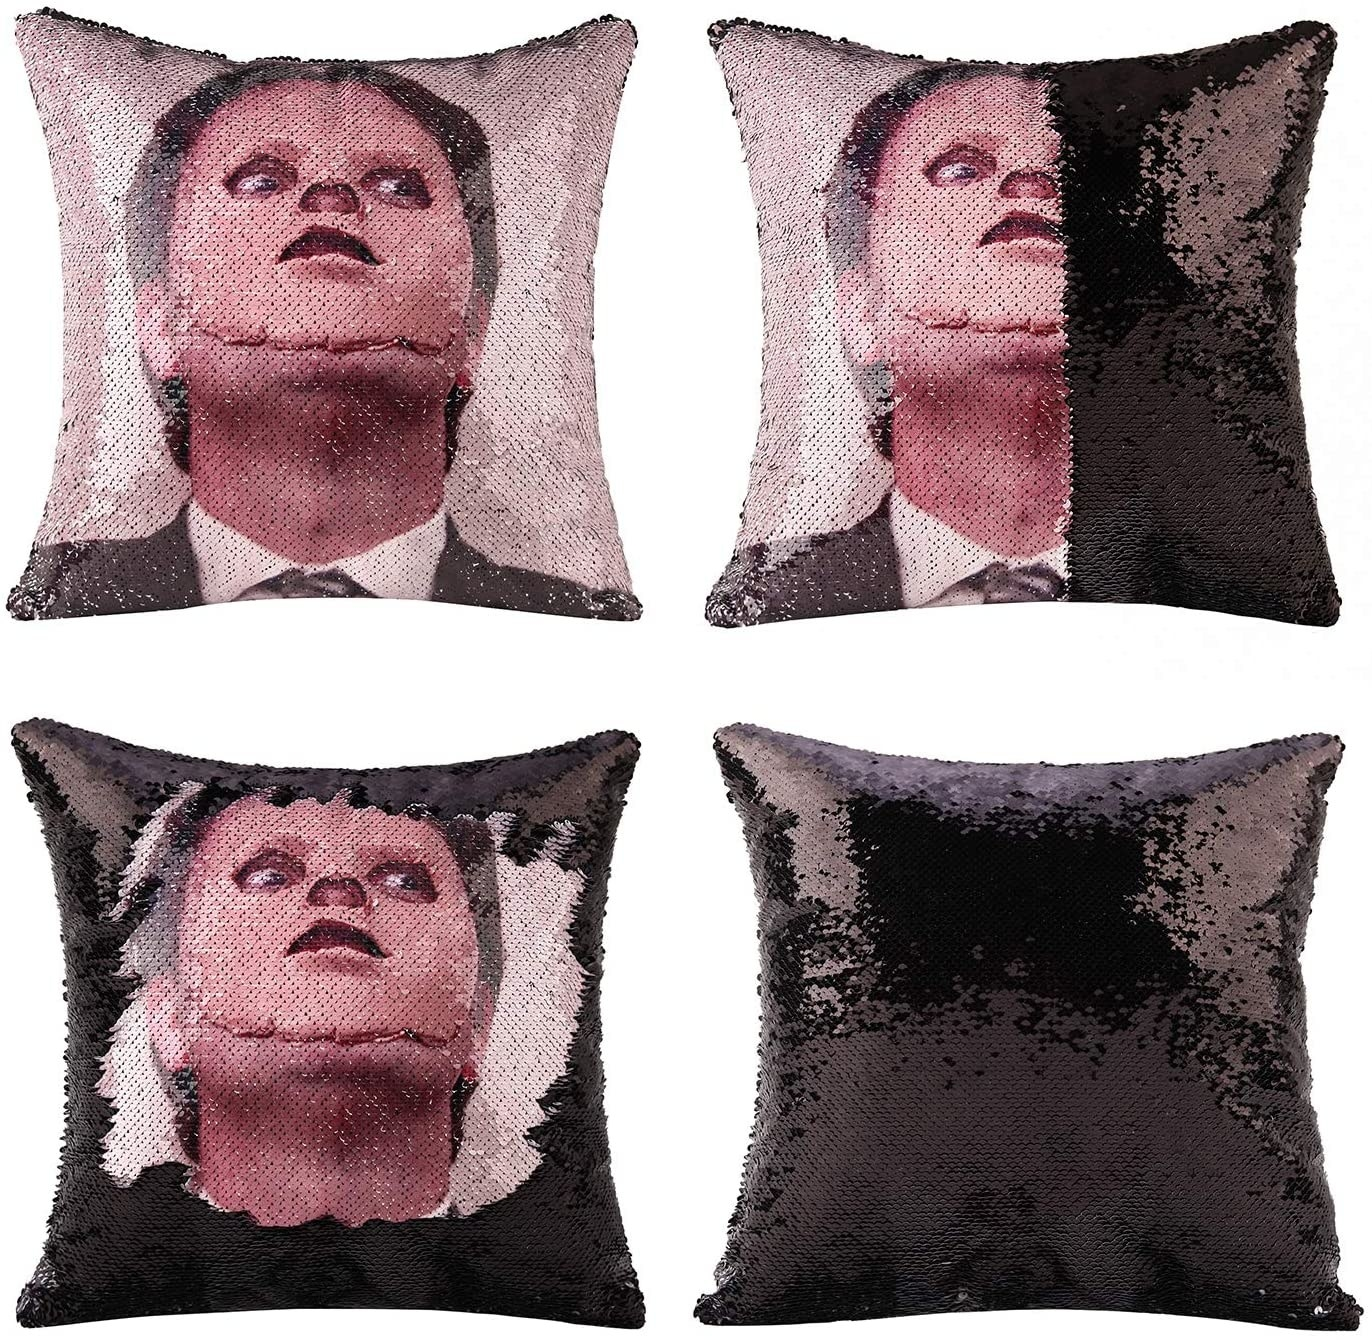 Four images of the pillow showing what it looks like when the sequins are flipped